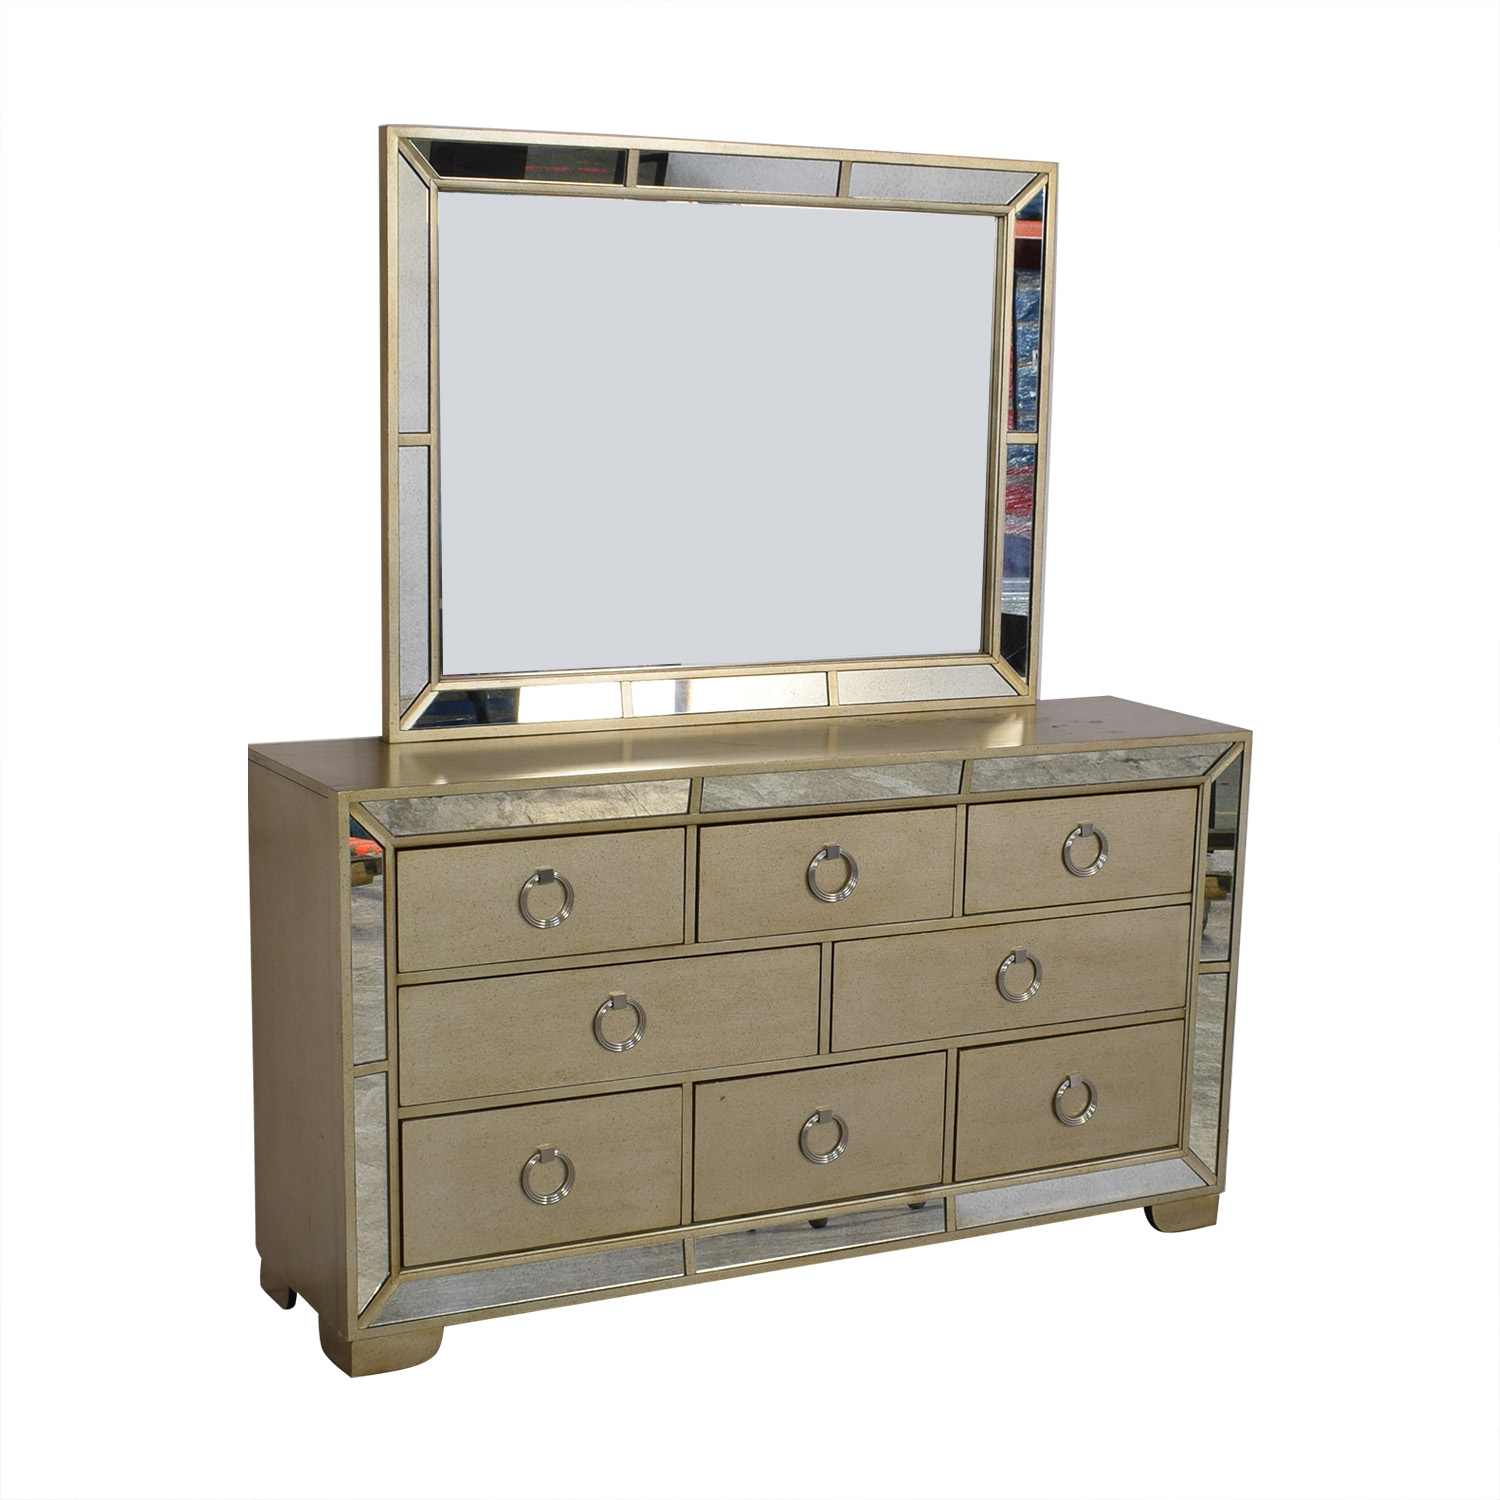 Macy's Macy's Ailey Collection Dresser with Mirror second hand